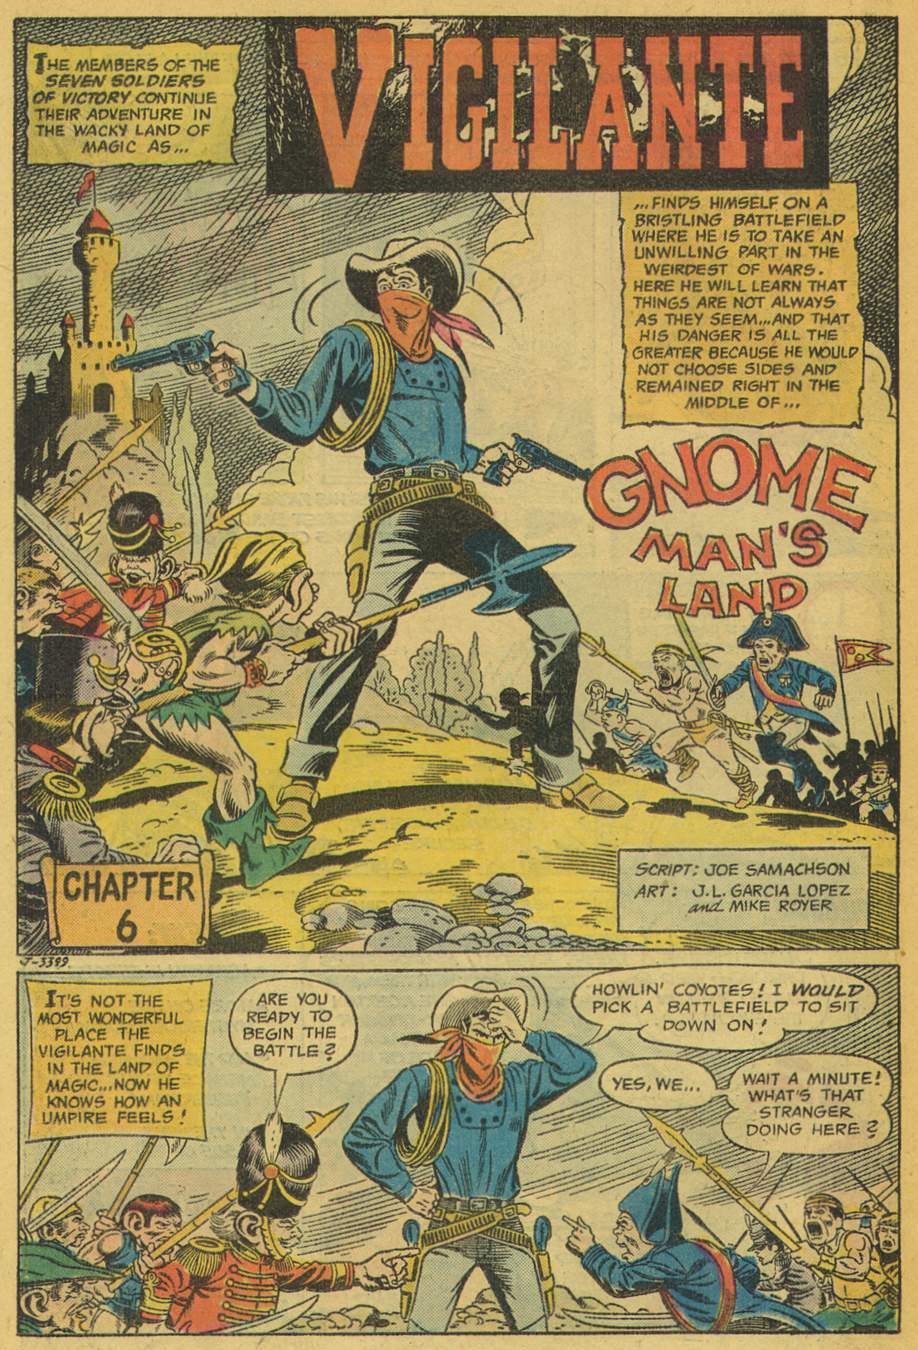 Adventure Comics (1938) #442 pg24, penciled by Jose Luis Garcia-Lopez & inked by Mike Royer.